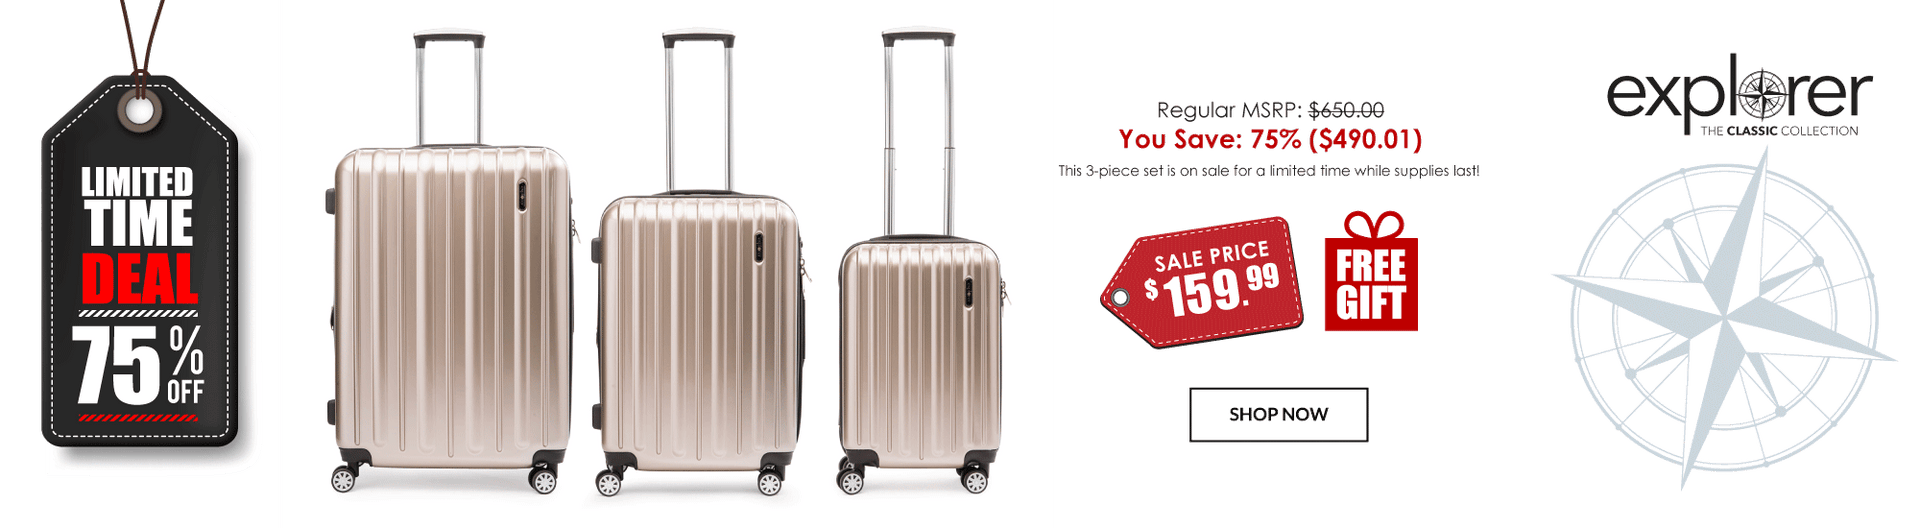 Explorer Lightweight Luggage Sale - Canada Luggage Depot